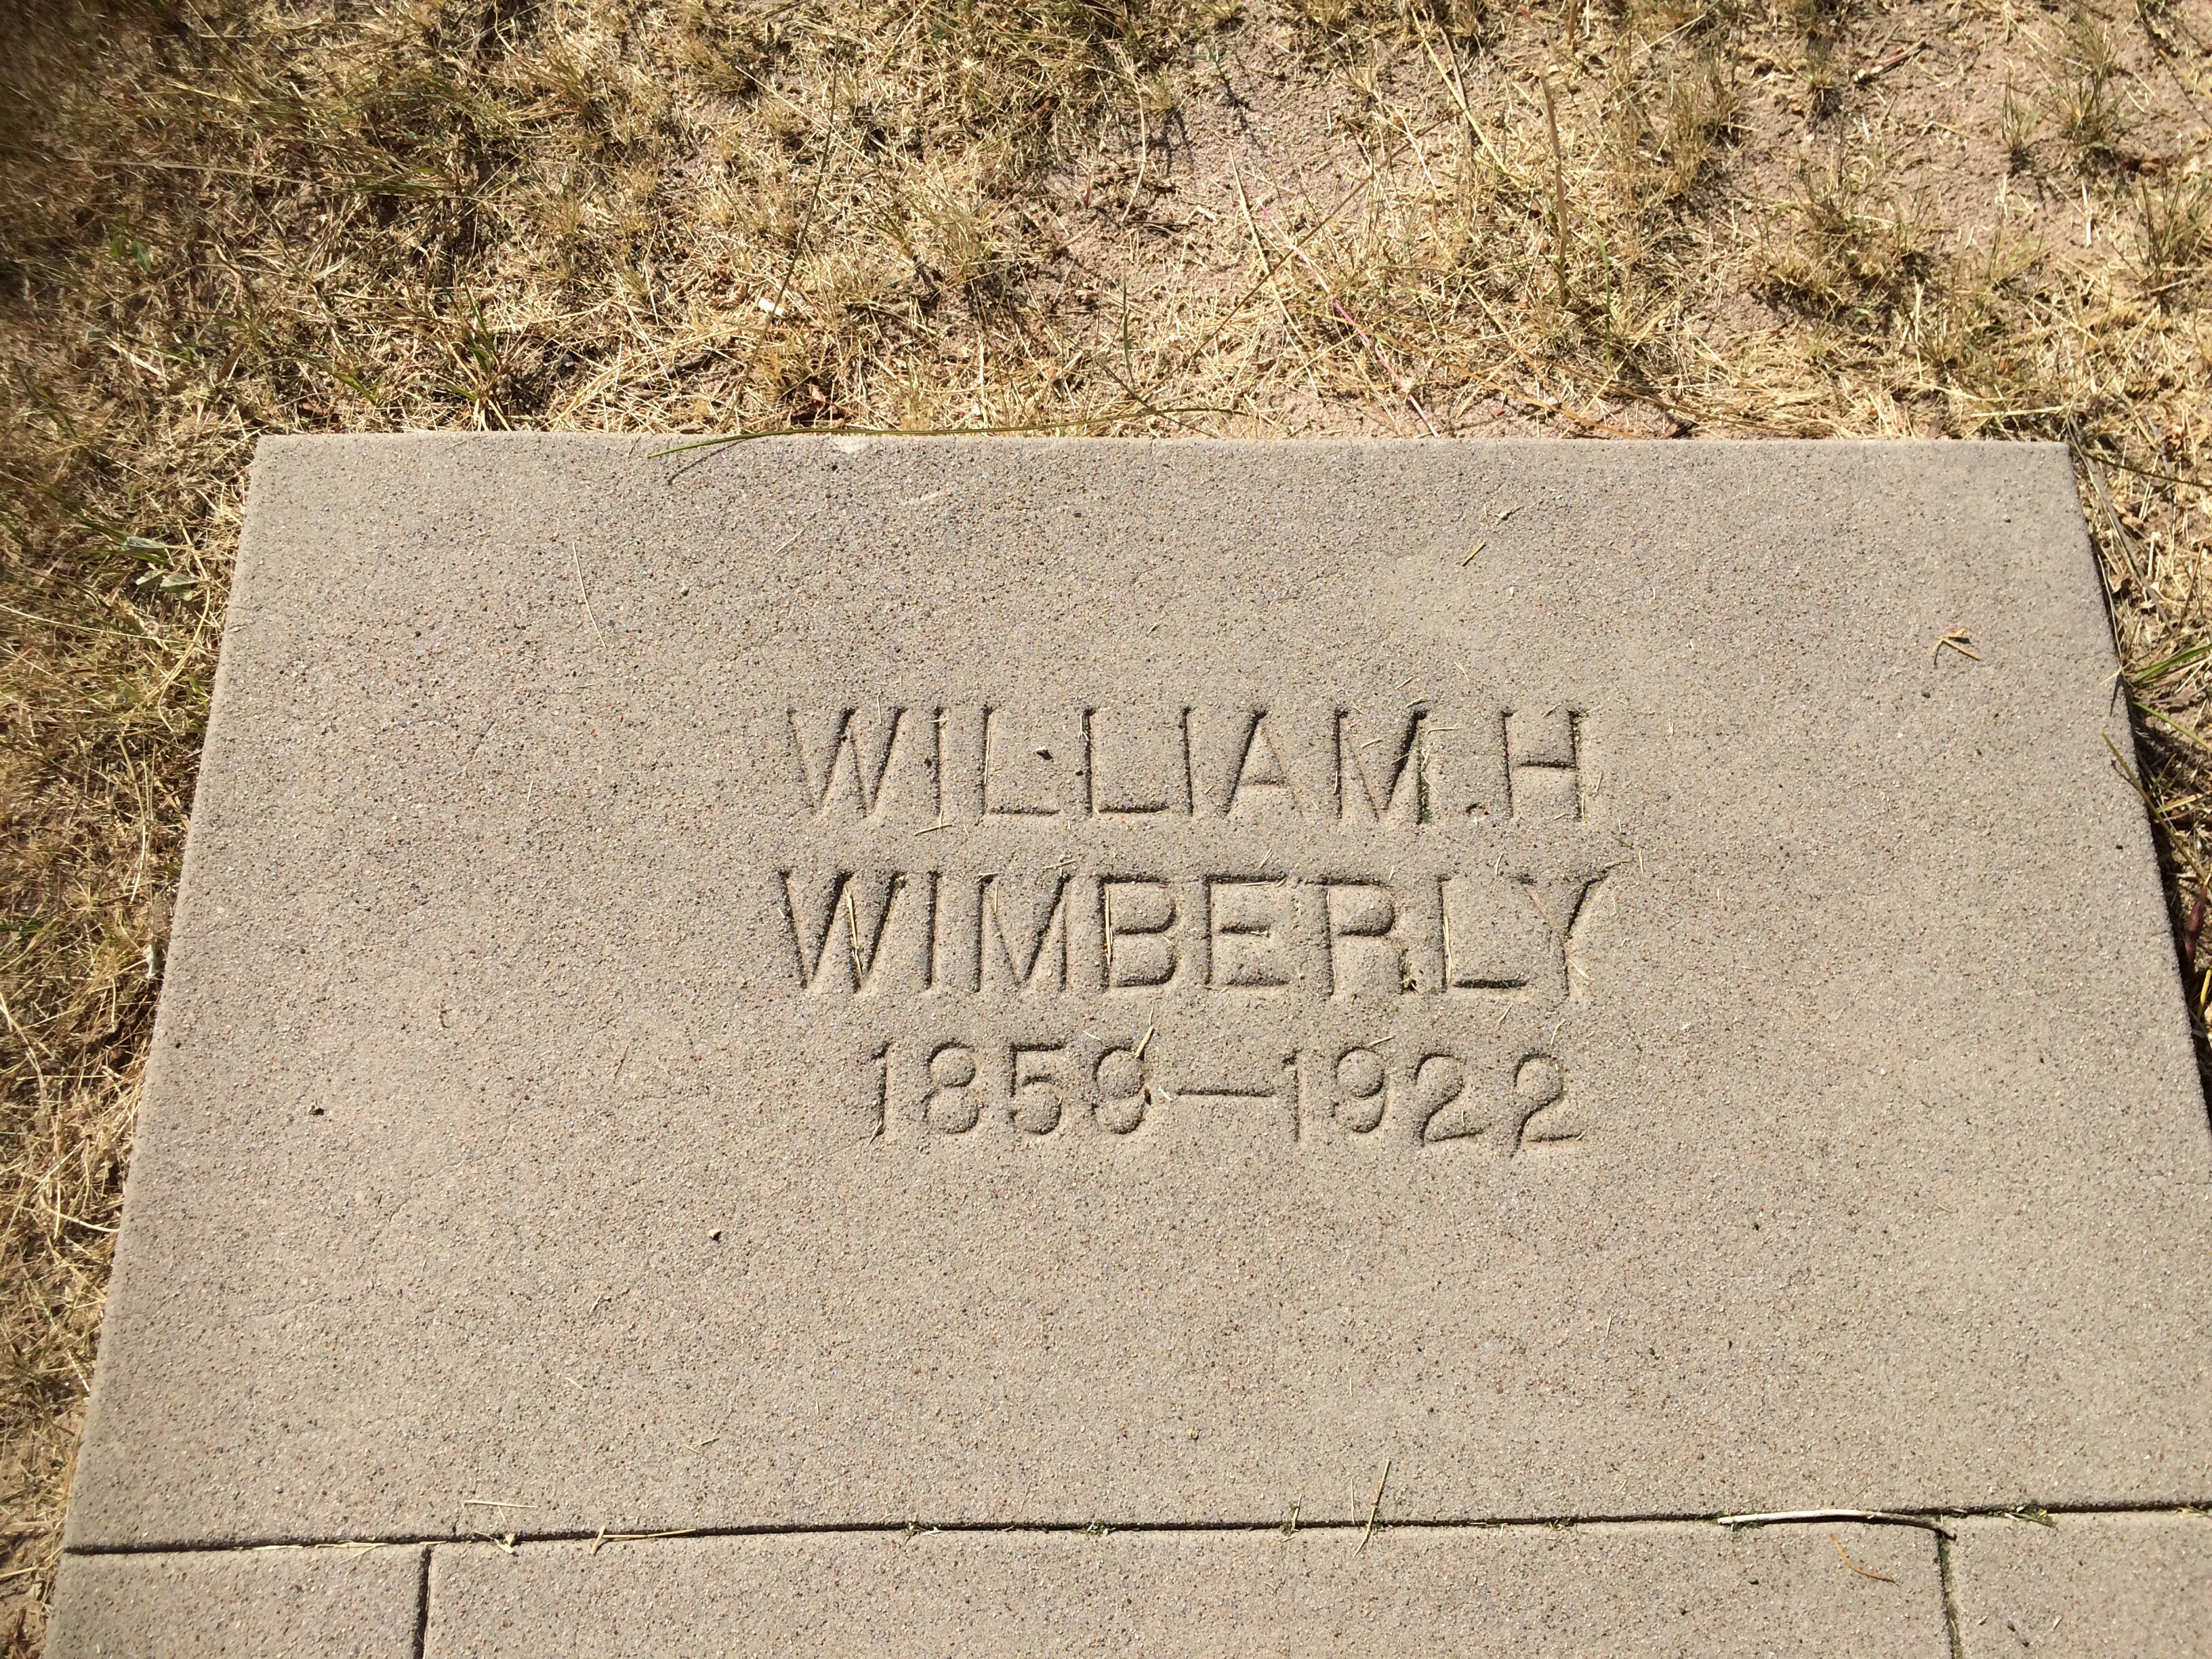 William Hickman Hick Wimberley